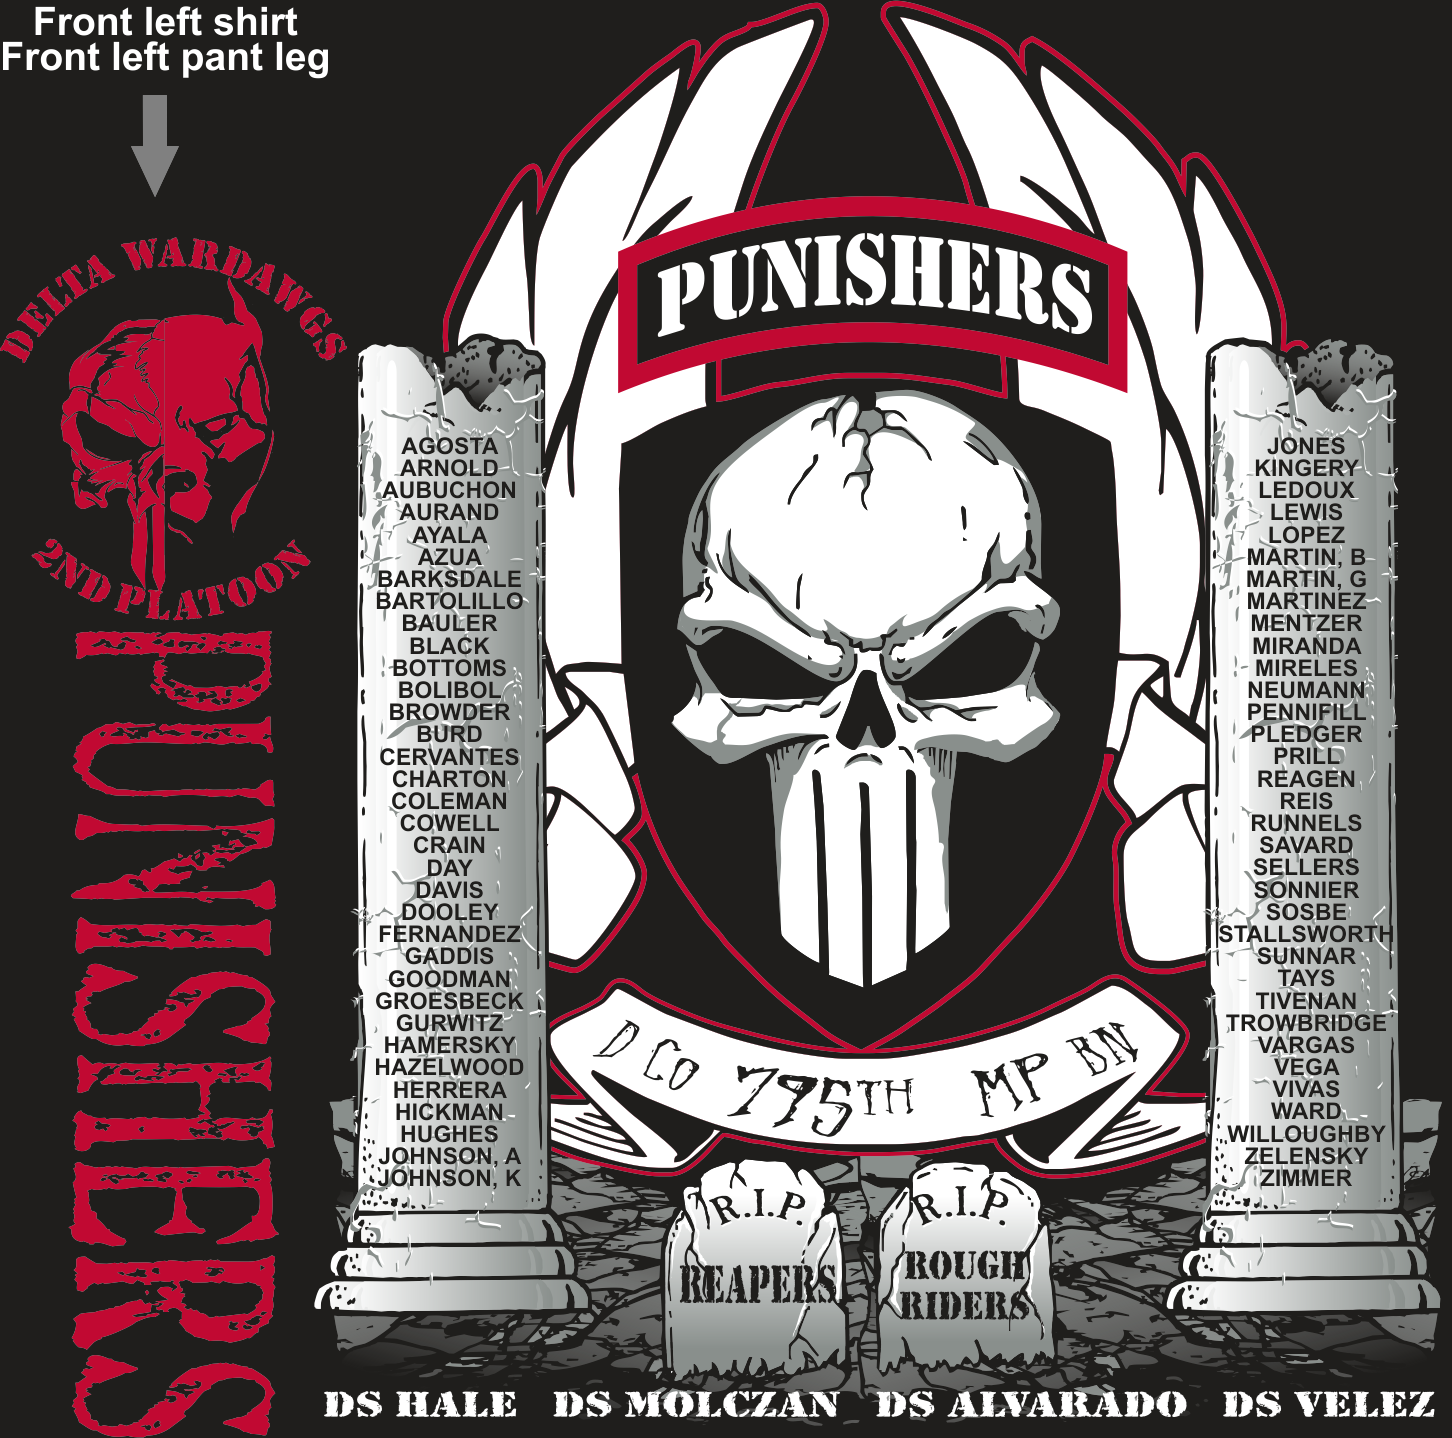 DELTA 795 PUNISHERS GRADUATING DAY 2-9-2017 digital